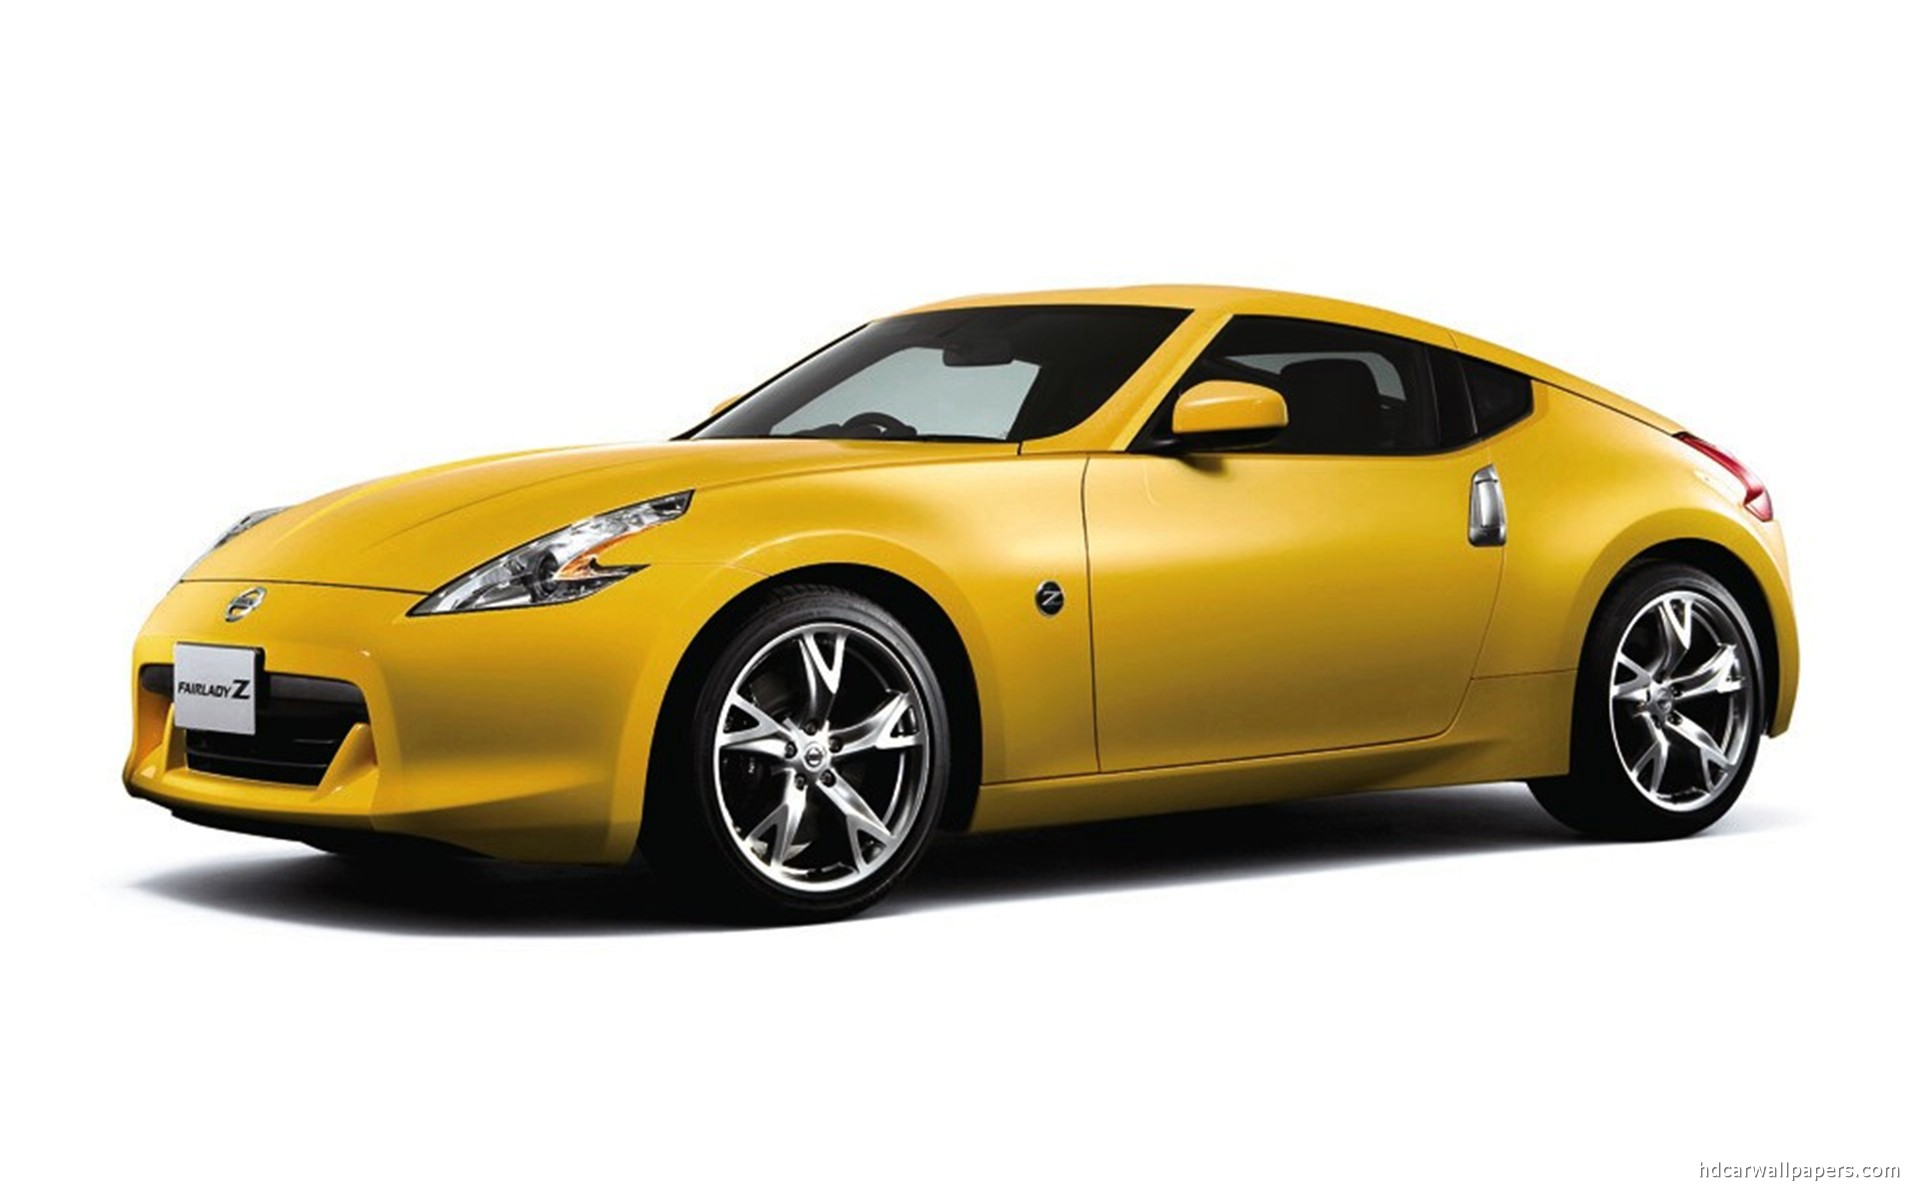 Nissan Fairlady Z Yellow Wallpaper Hd Car Wallpapers Id